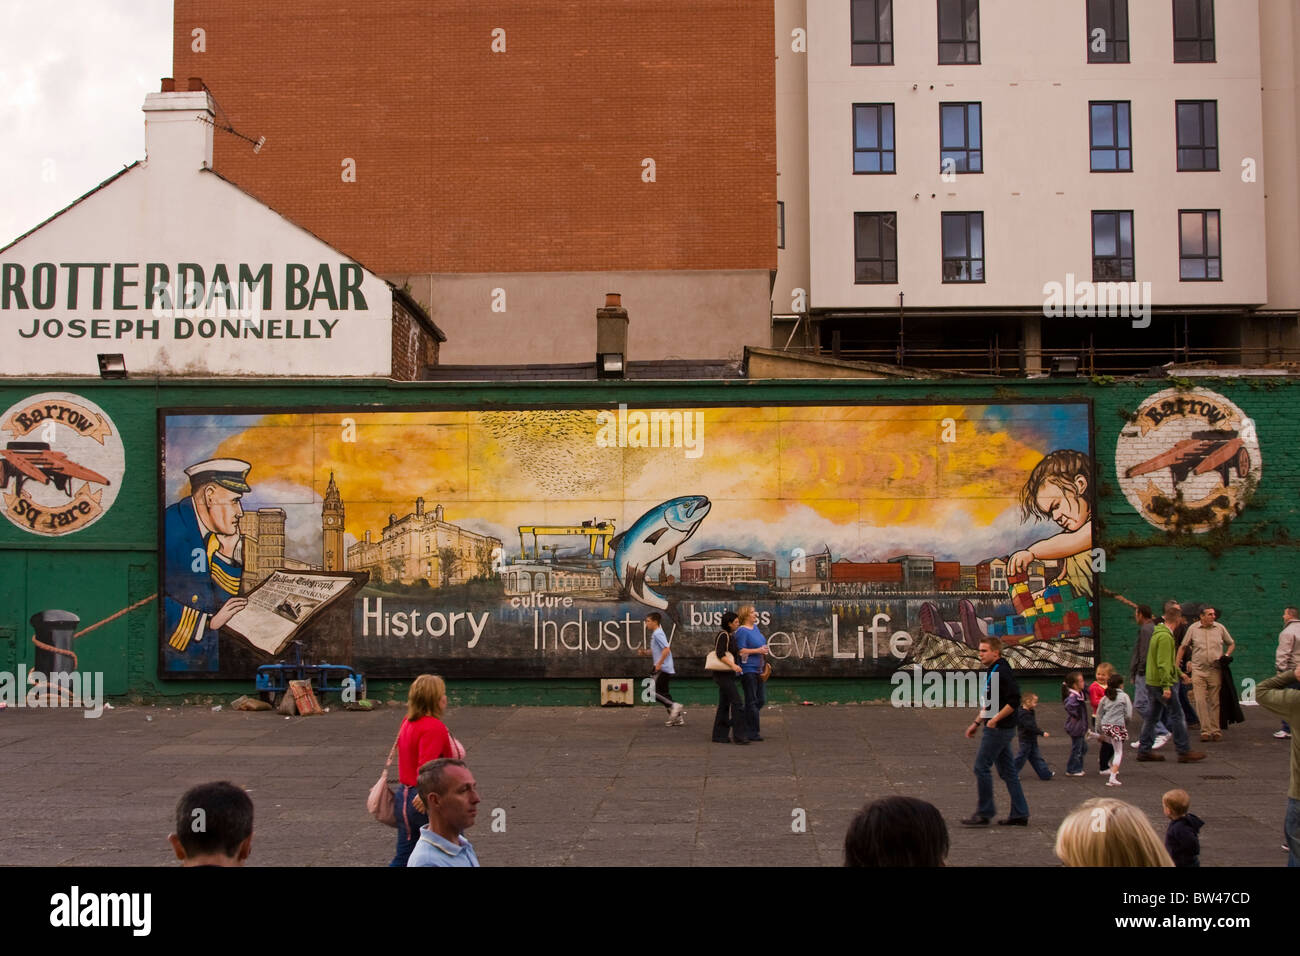 Mural on gable wall of the Rotterdam Bar in Belfast Northern Ireland - Stock Image